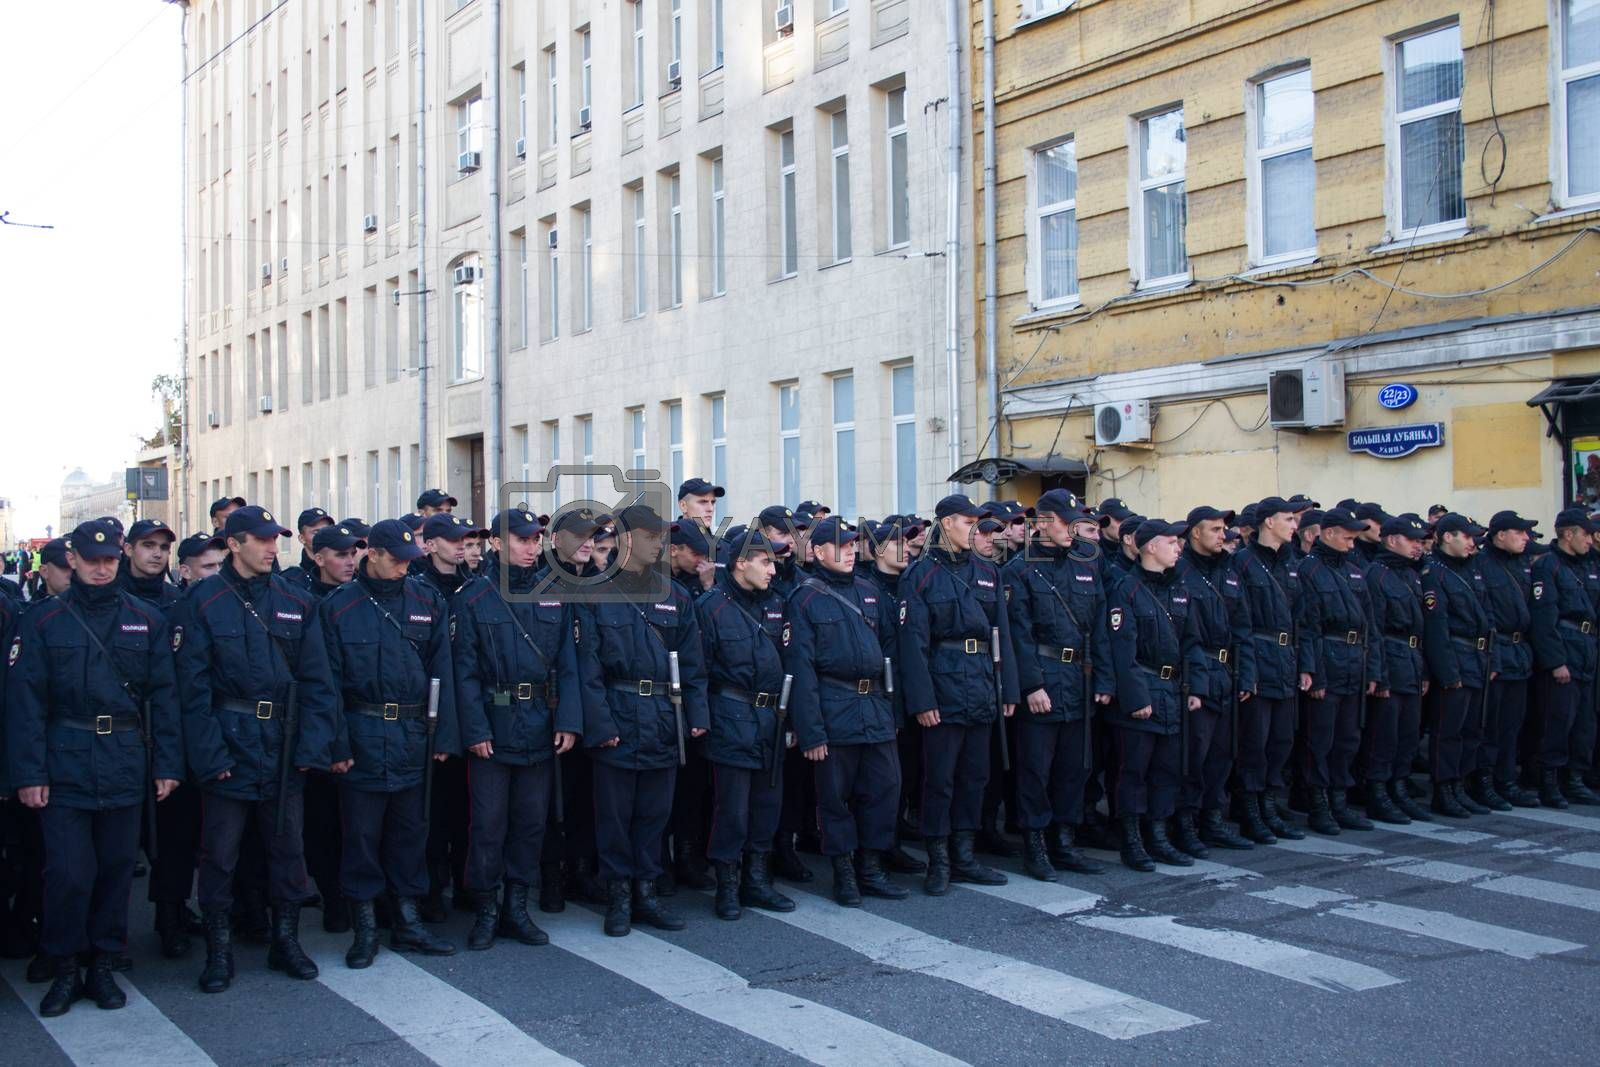 Royalty free image of The police, March for peace by olegkozyrev